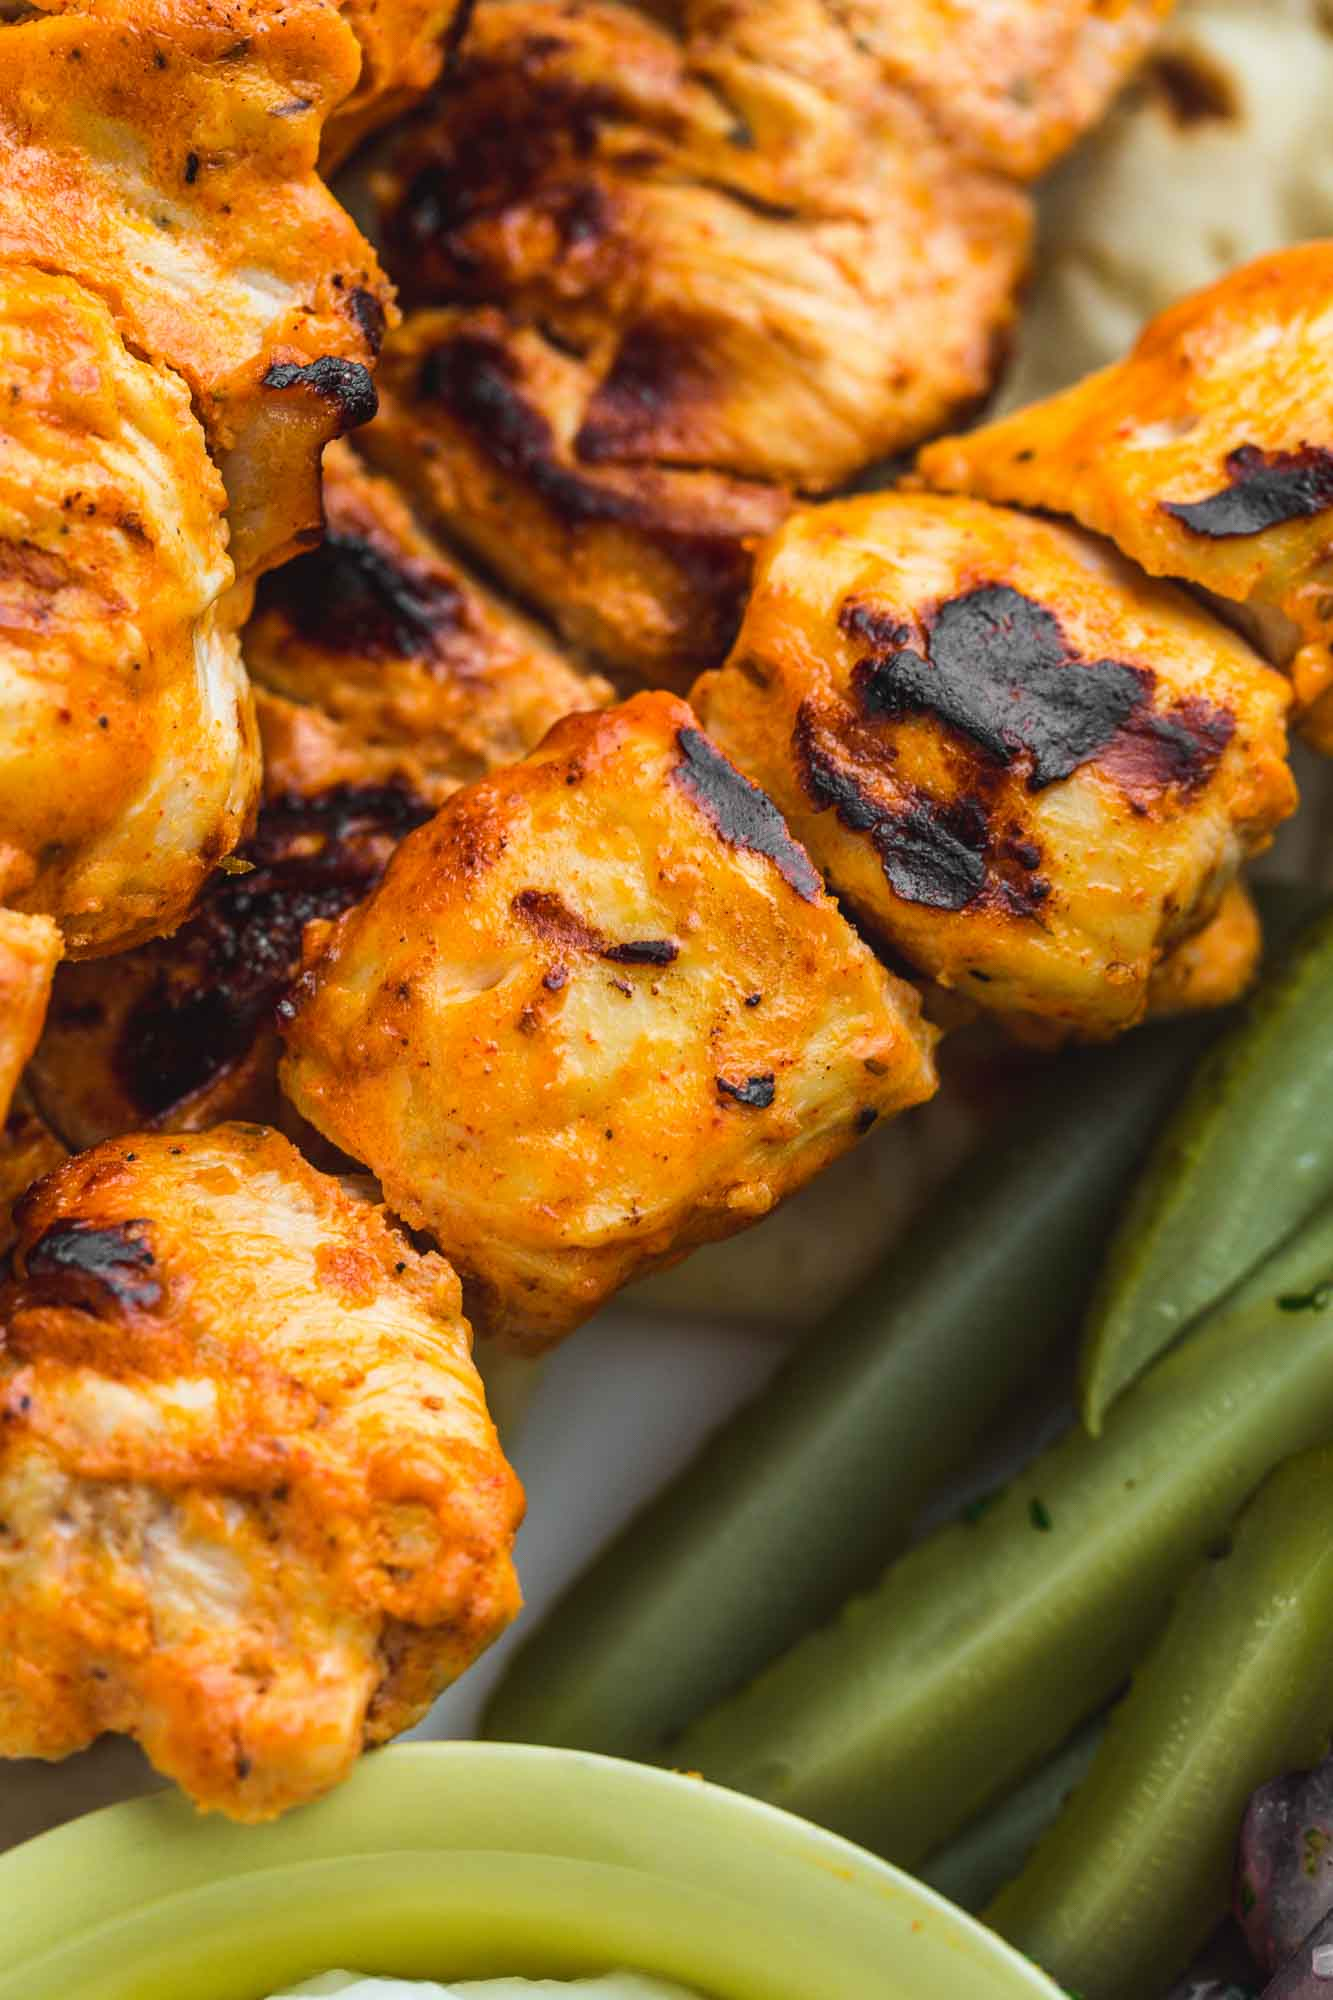 A close up shot of grilled shish tawook chicken on skewers